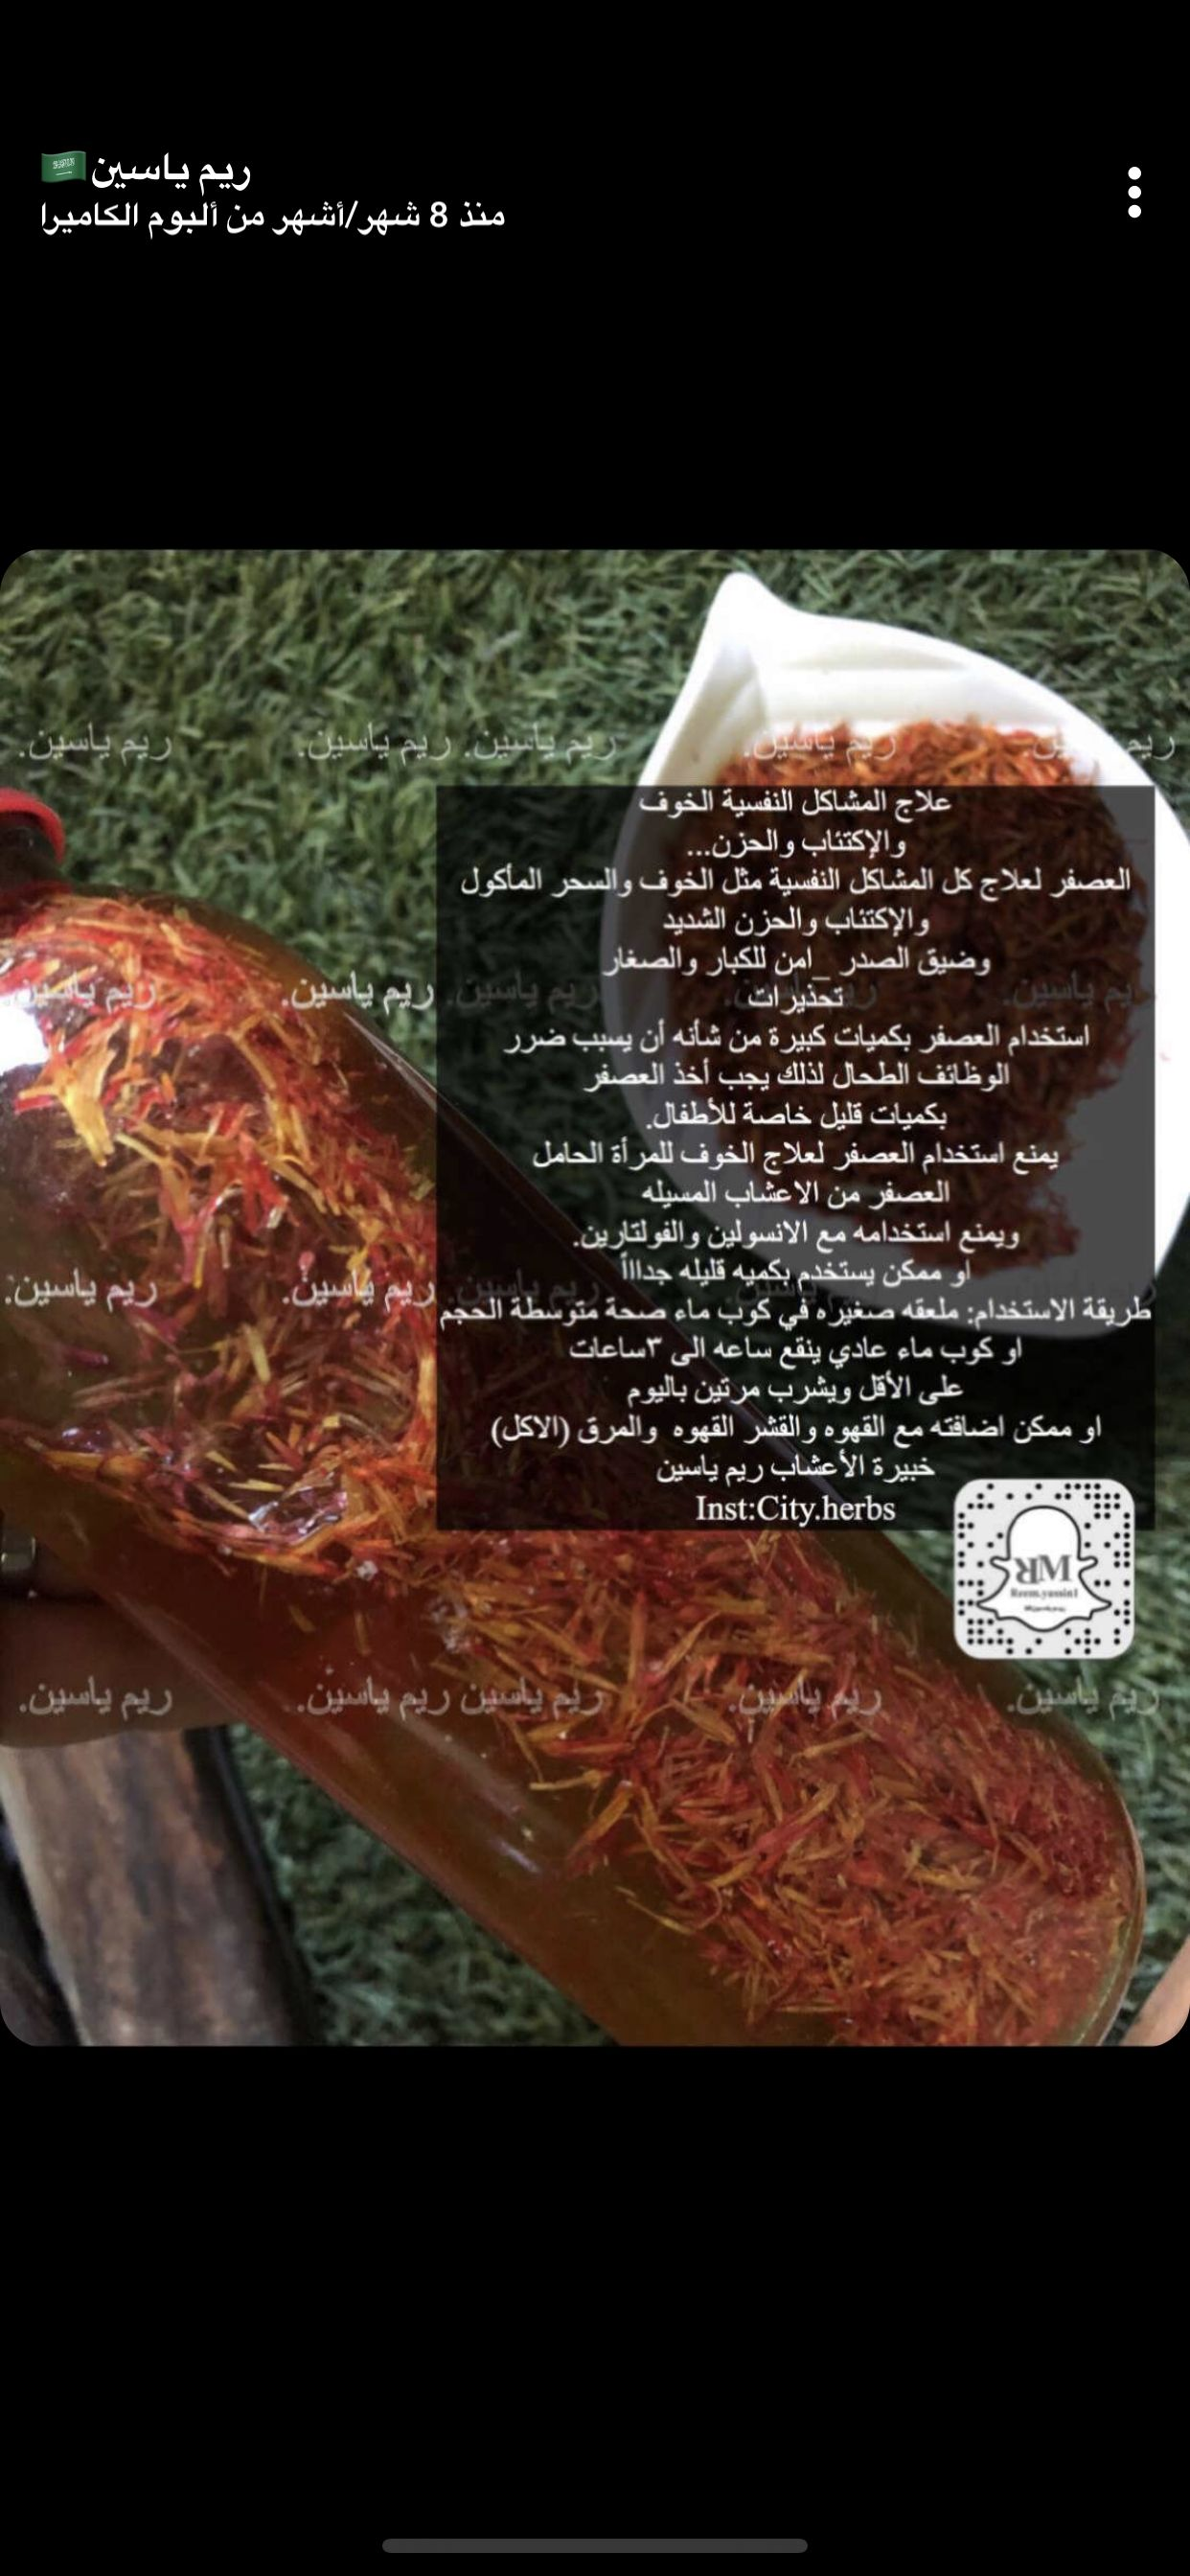 Pin By Ma7thoor On Sweetatey Herbs Application Iphone Meat Jerky